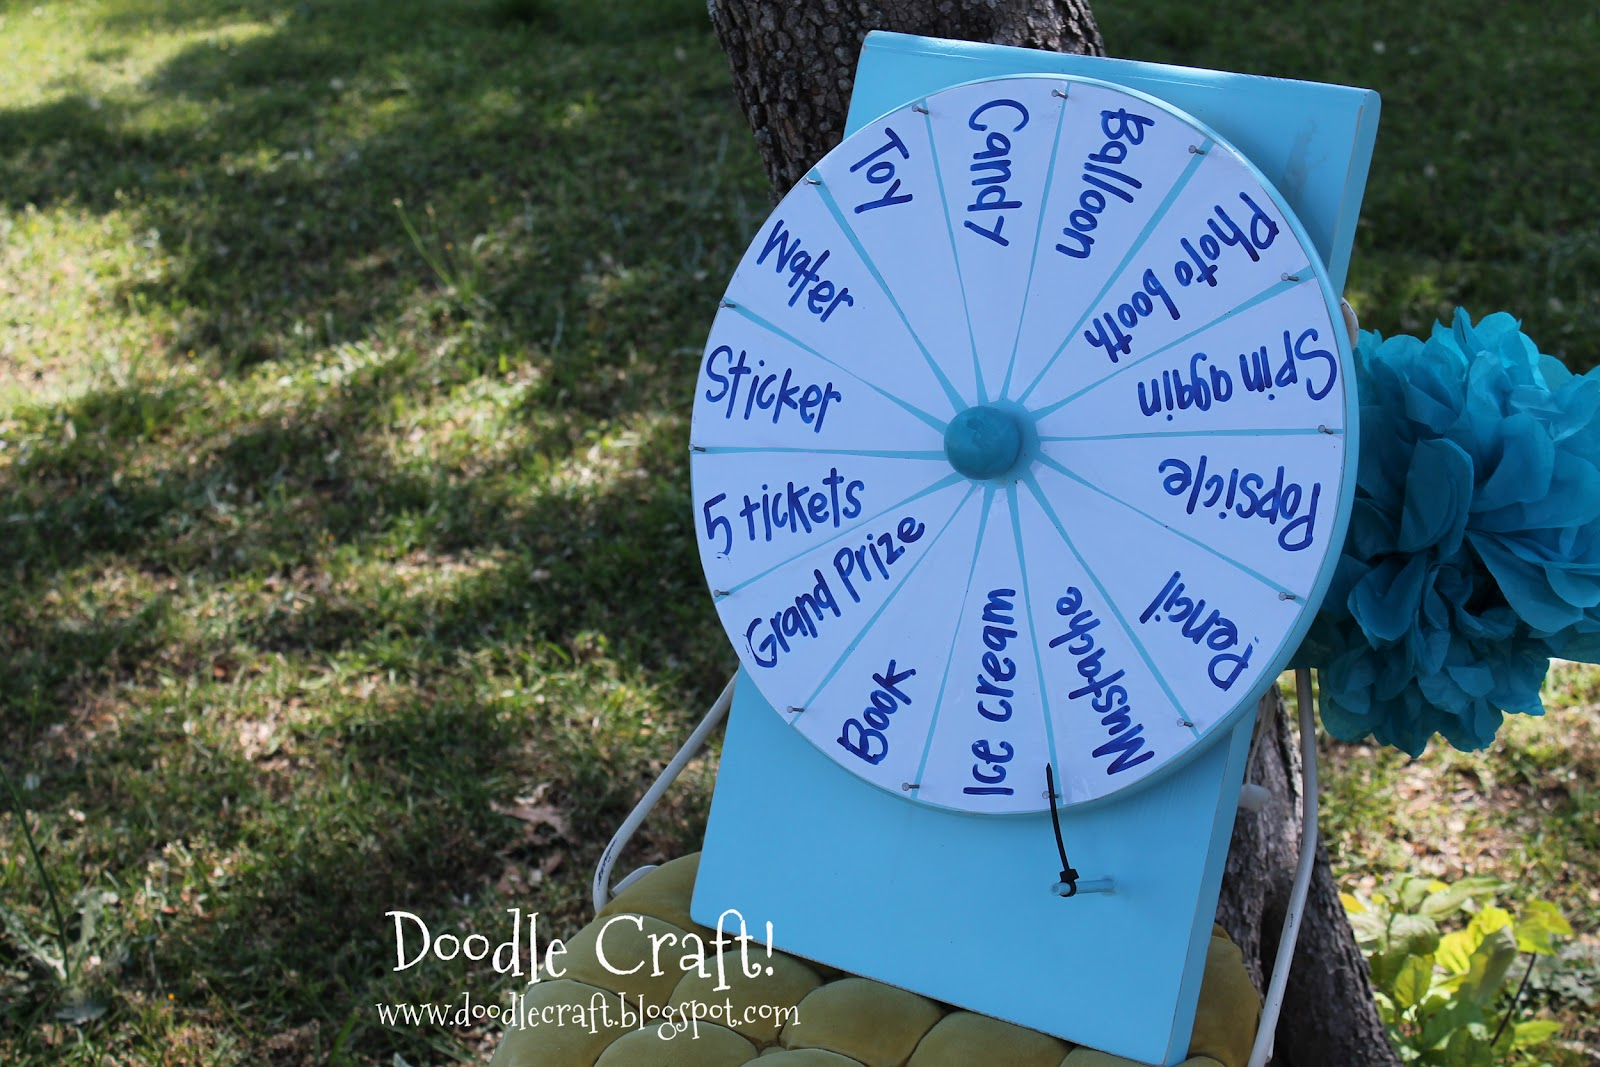 Spin wheel for prizes how to make one inch